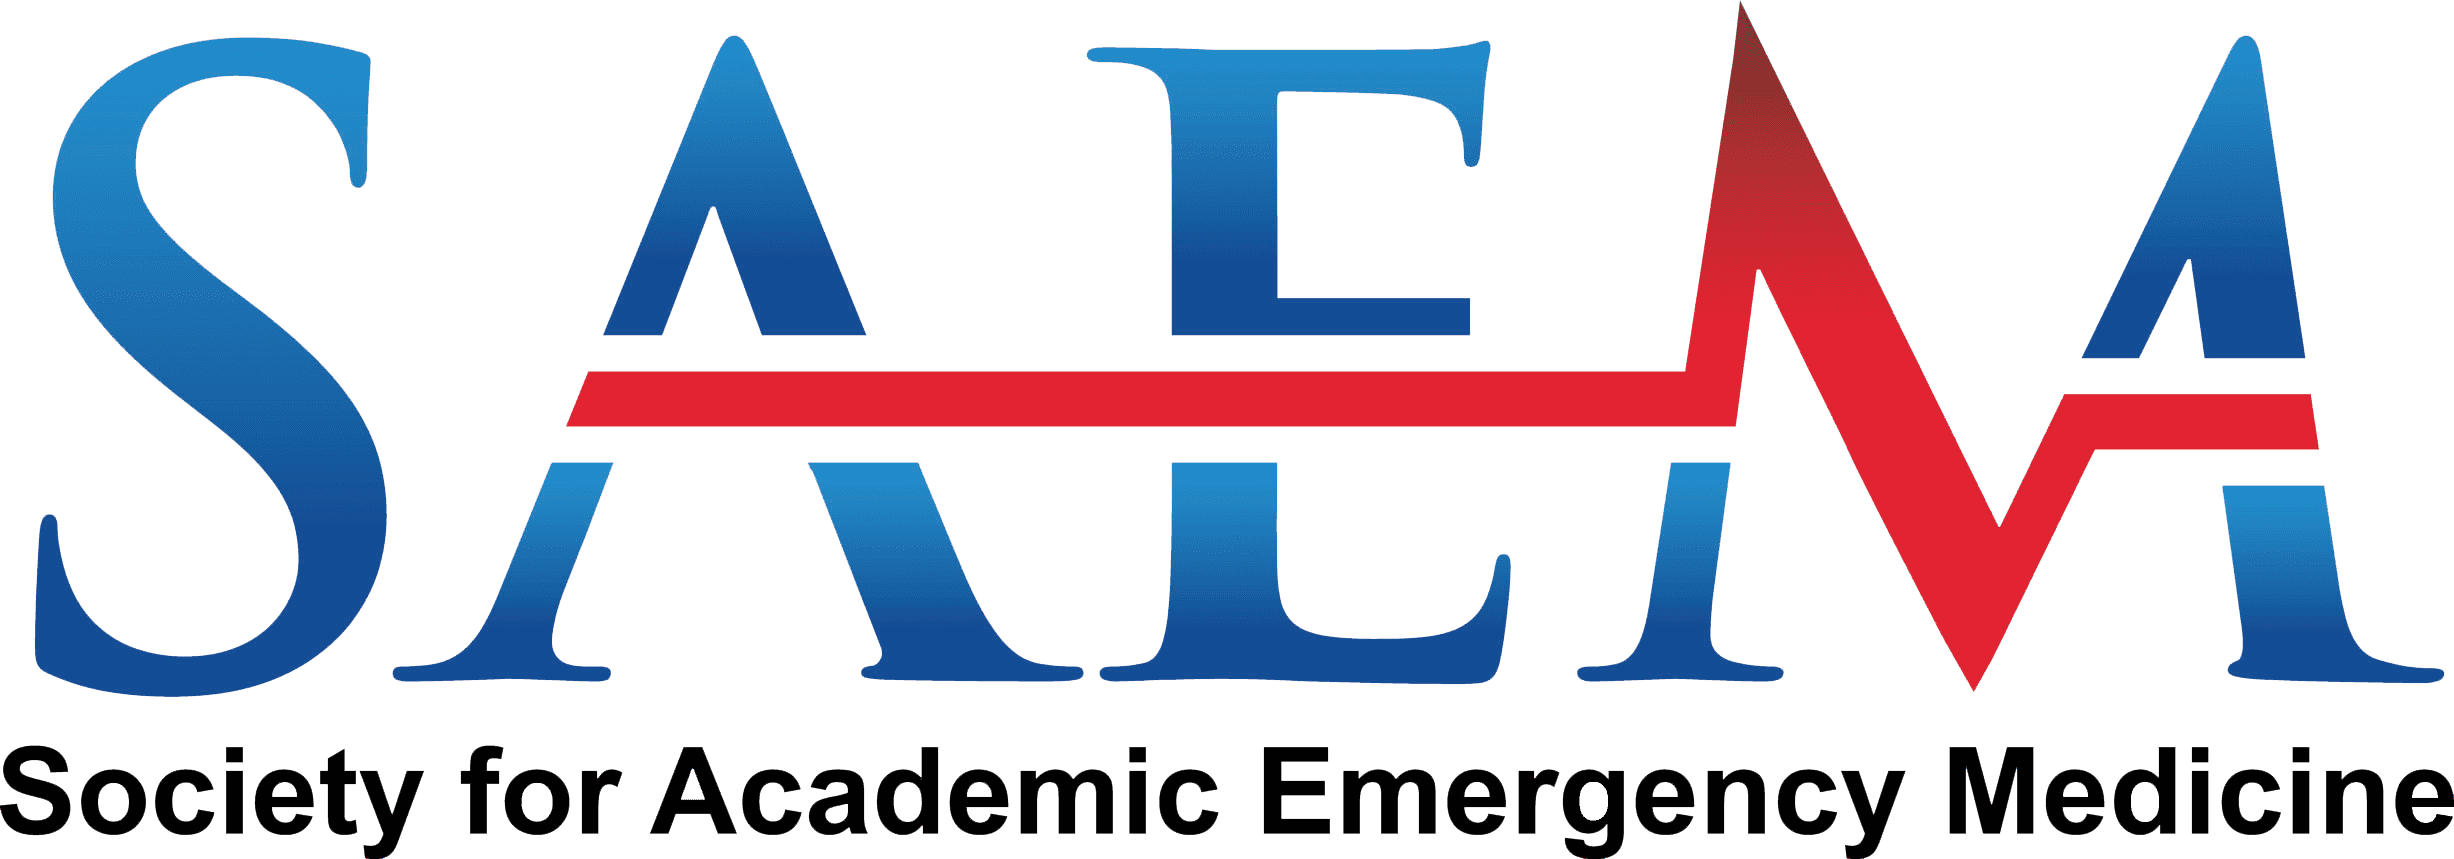 Society for Academic Emergency Medicine Logo | SAEM